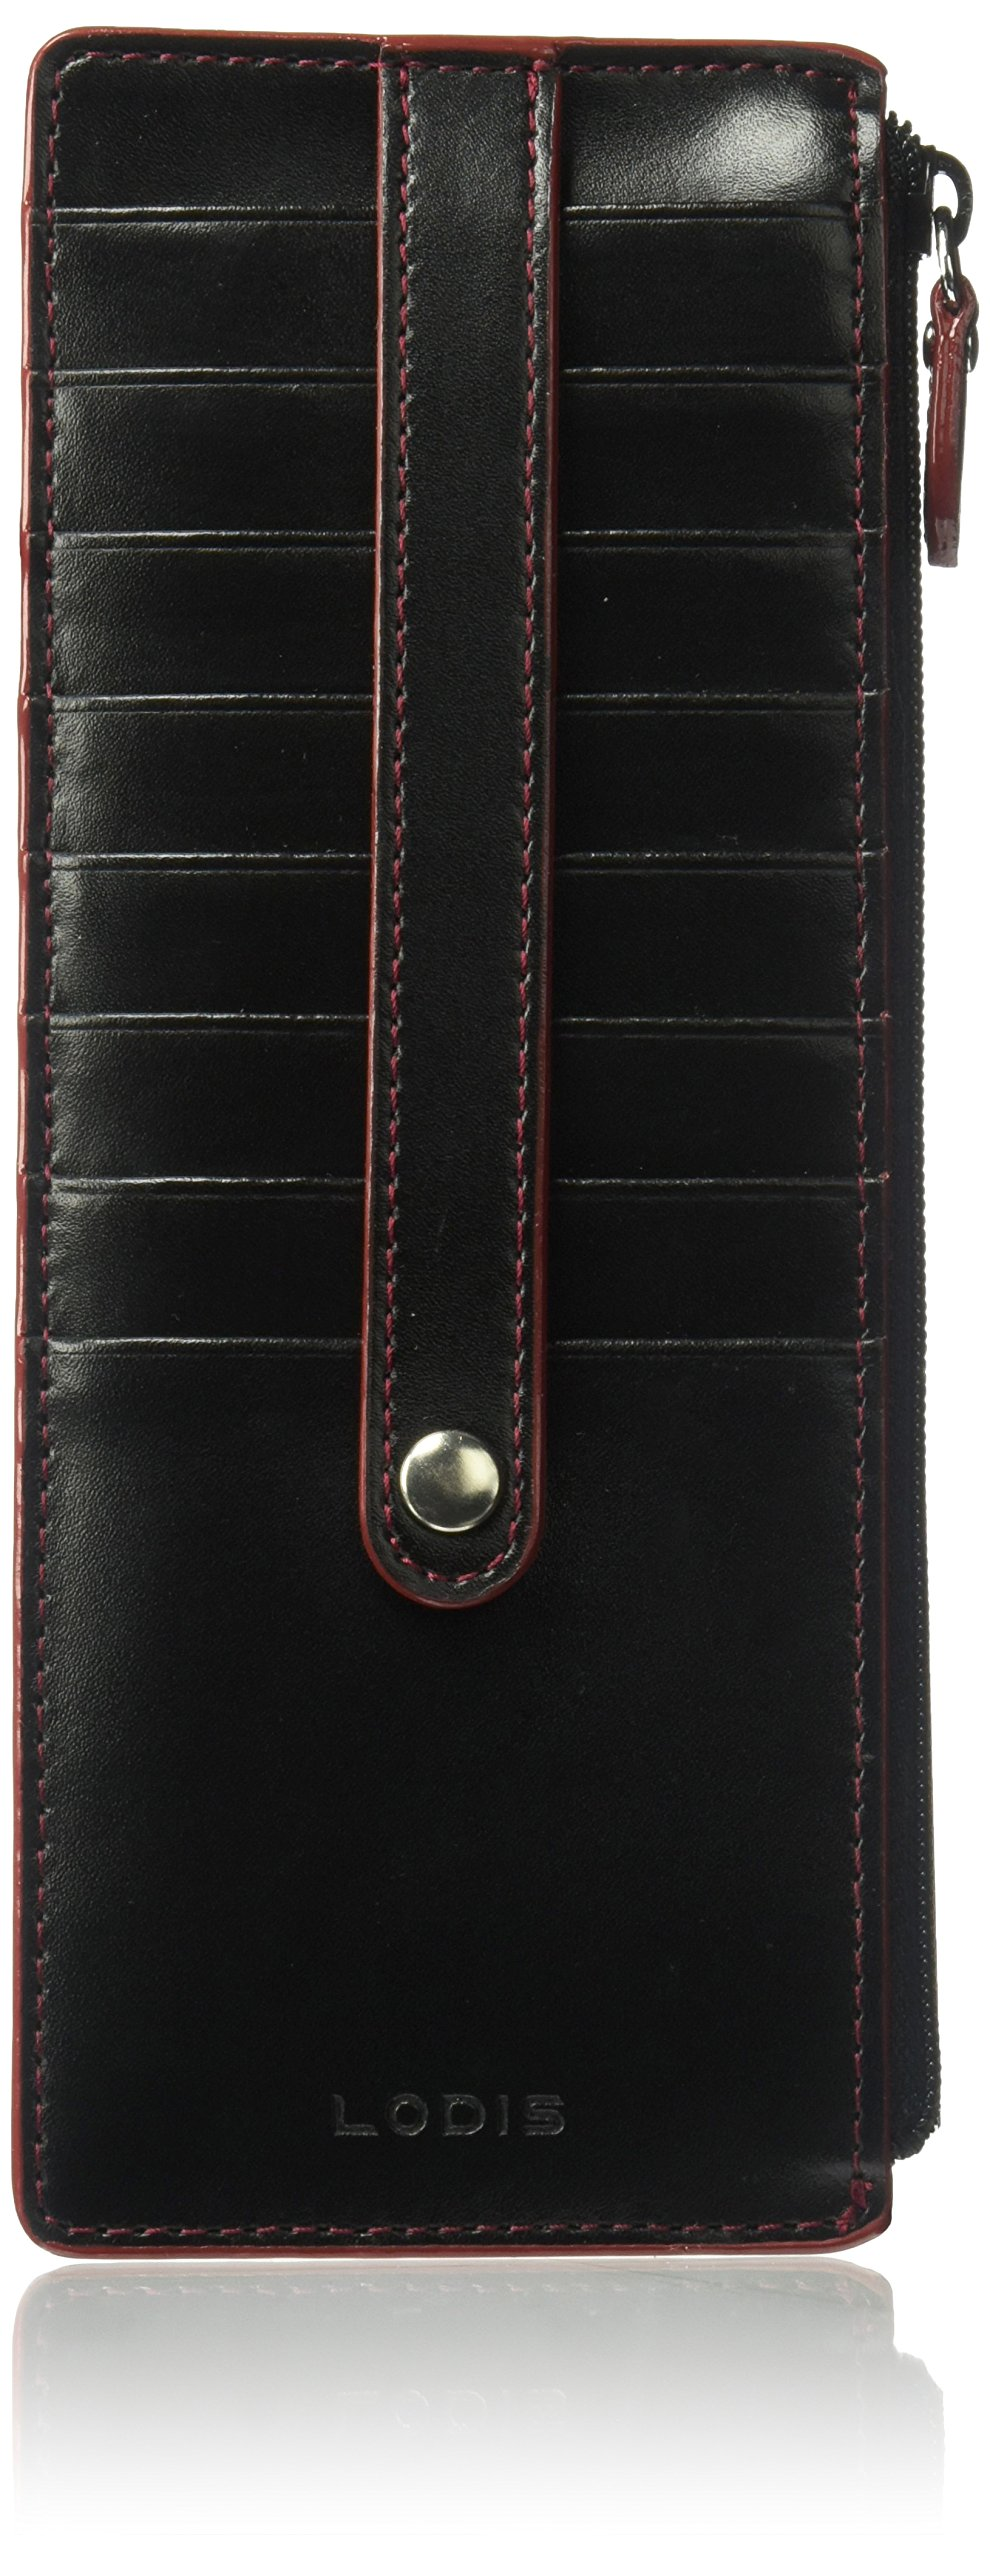 the latest bfa90 1c434 Lodis Audrey Rfid Credit Card Case With Zip Pocket Credit Card Holder